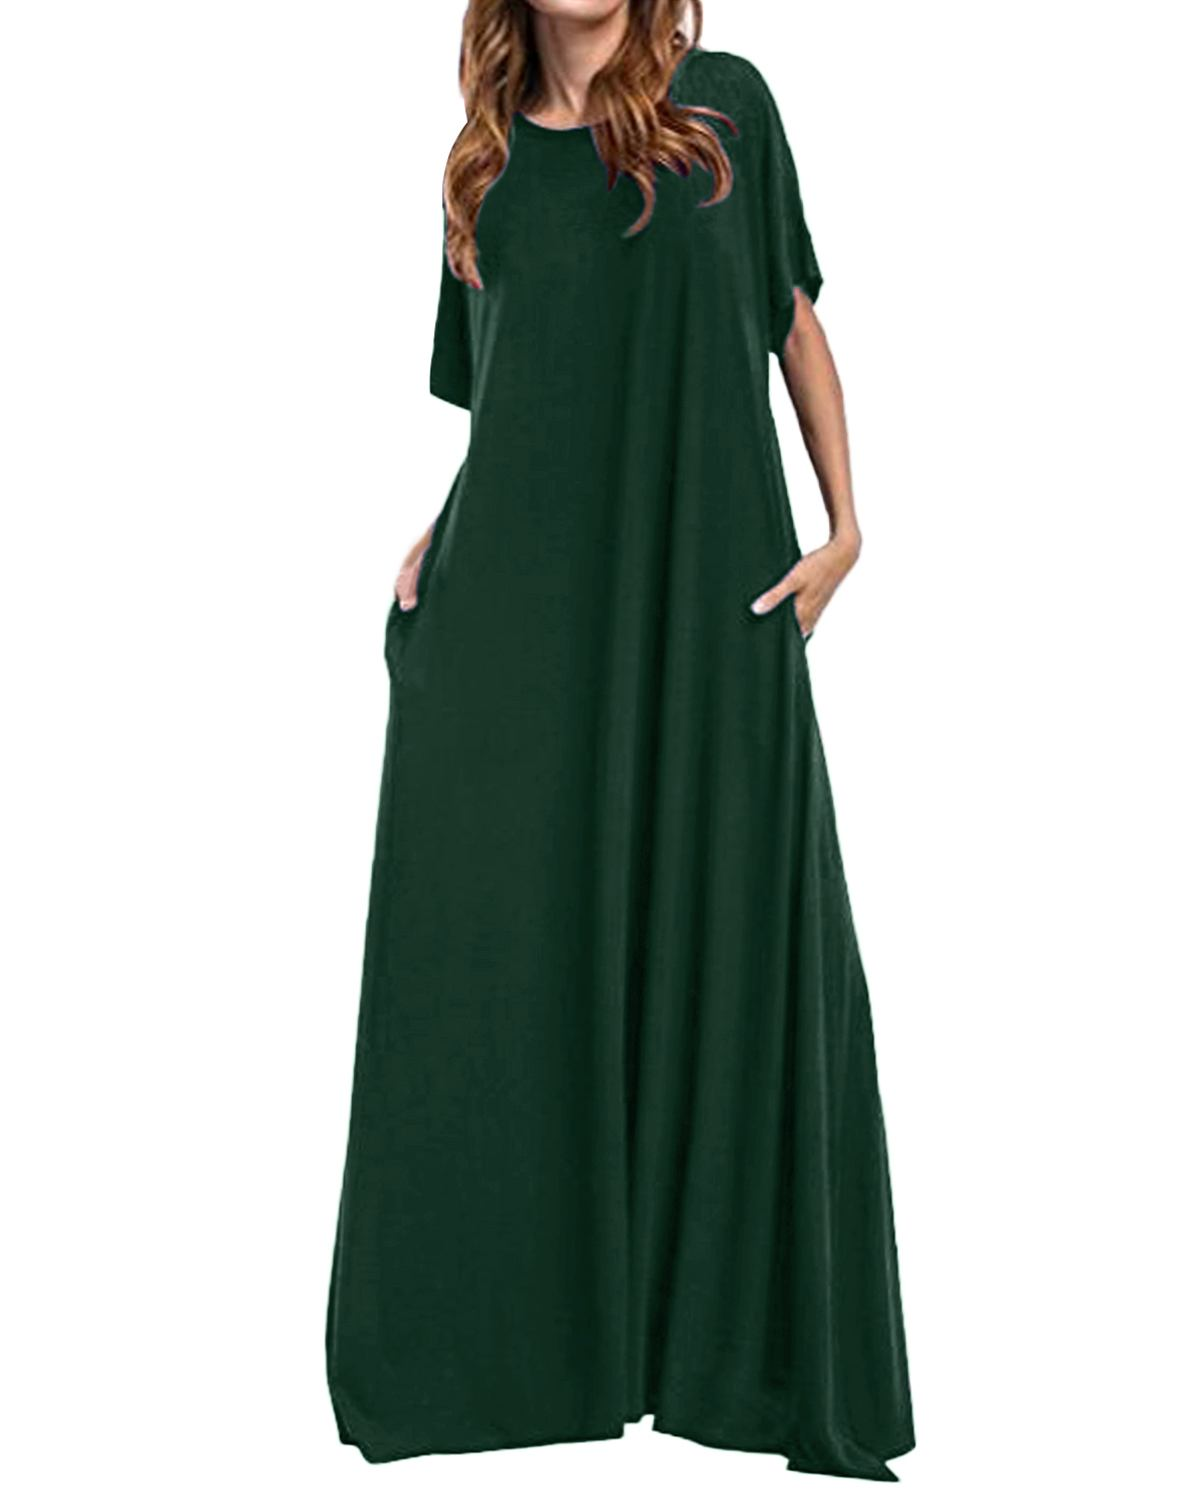 Plus Size Long Maxi Dress ZANZEA 2019 Women Half Sleeve Solid Round Neck Vintage Casual Loose Long Elegant Robe Bodycon Vestidos